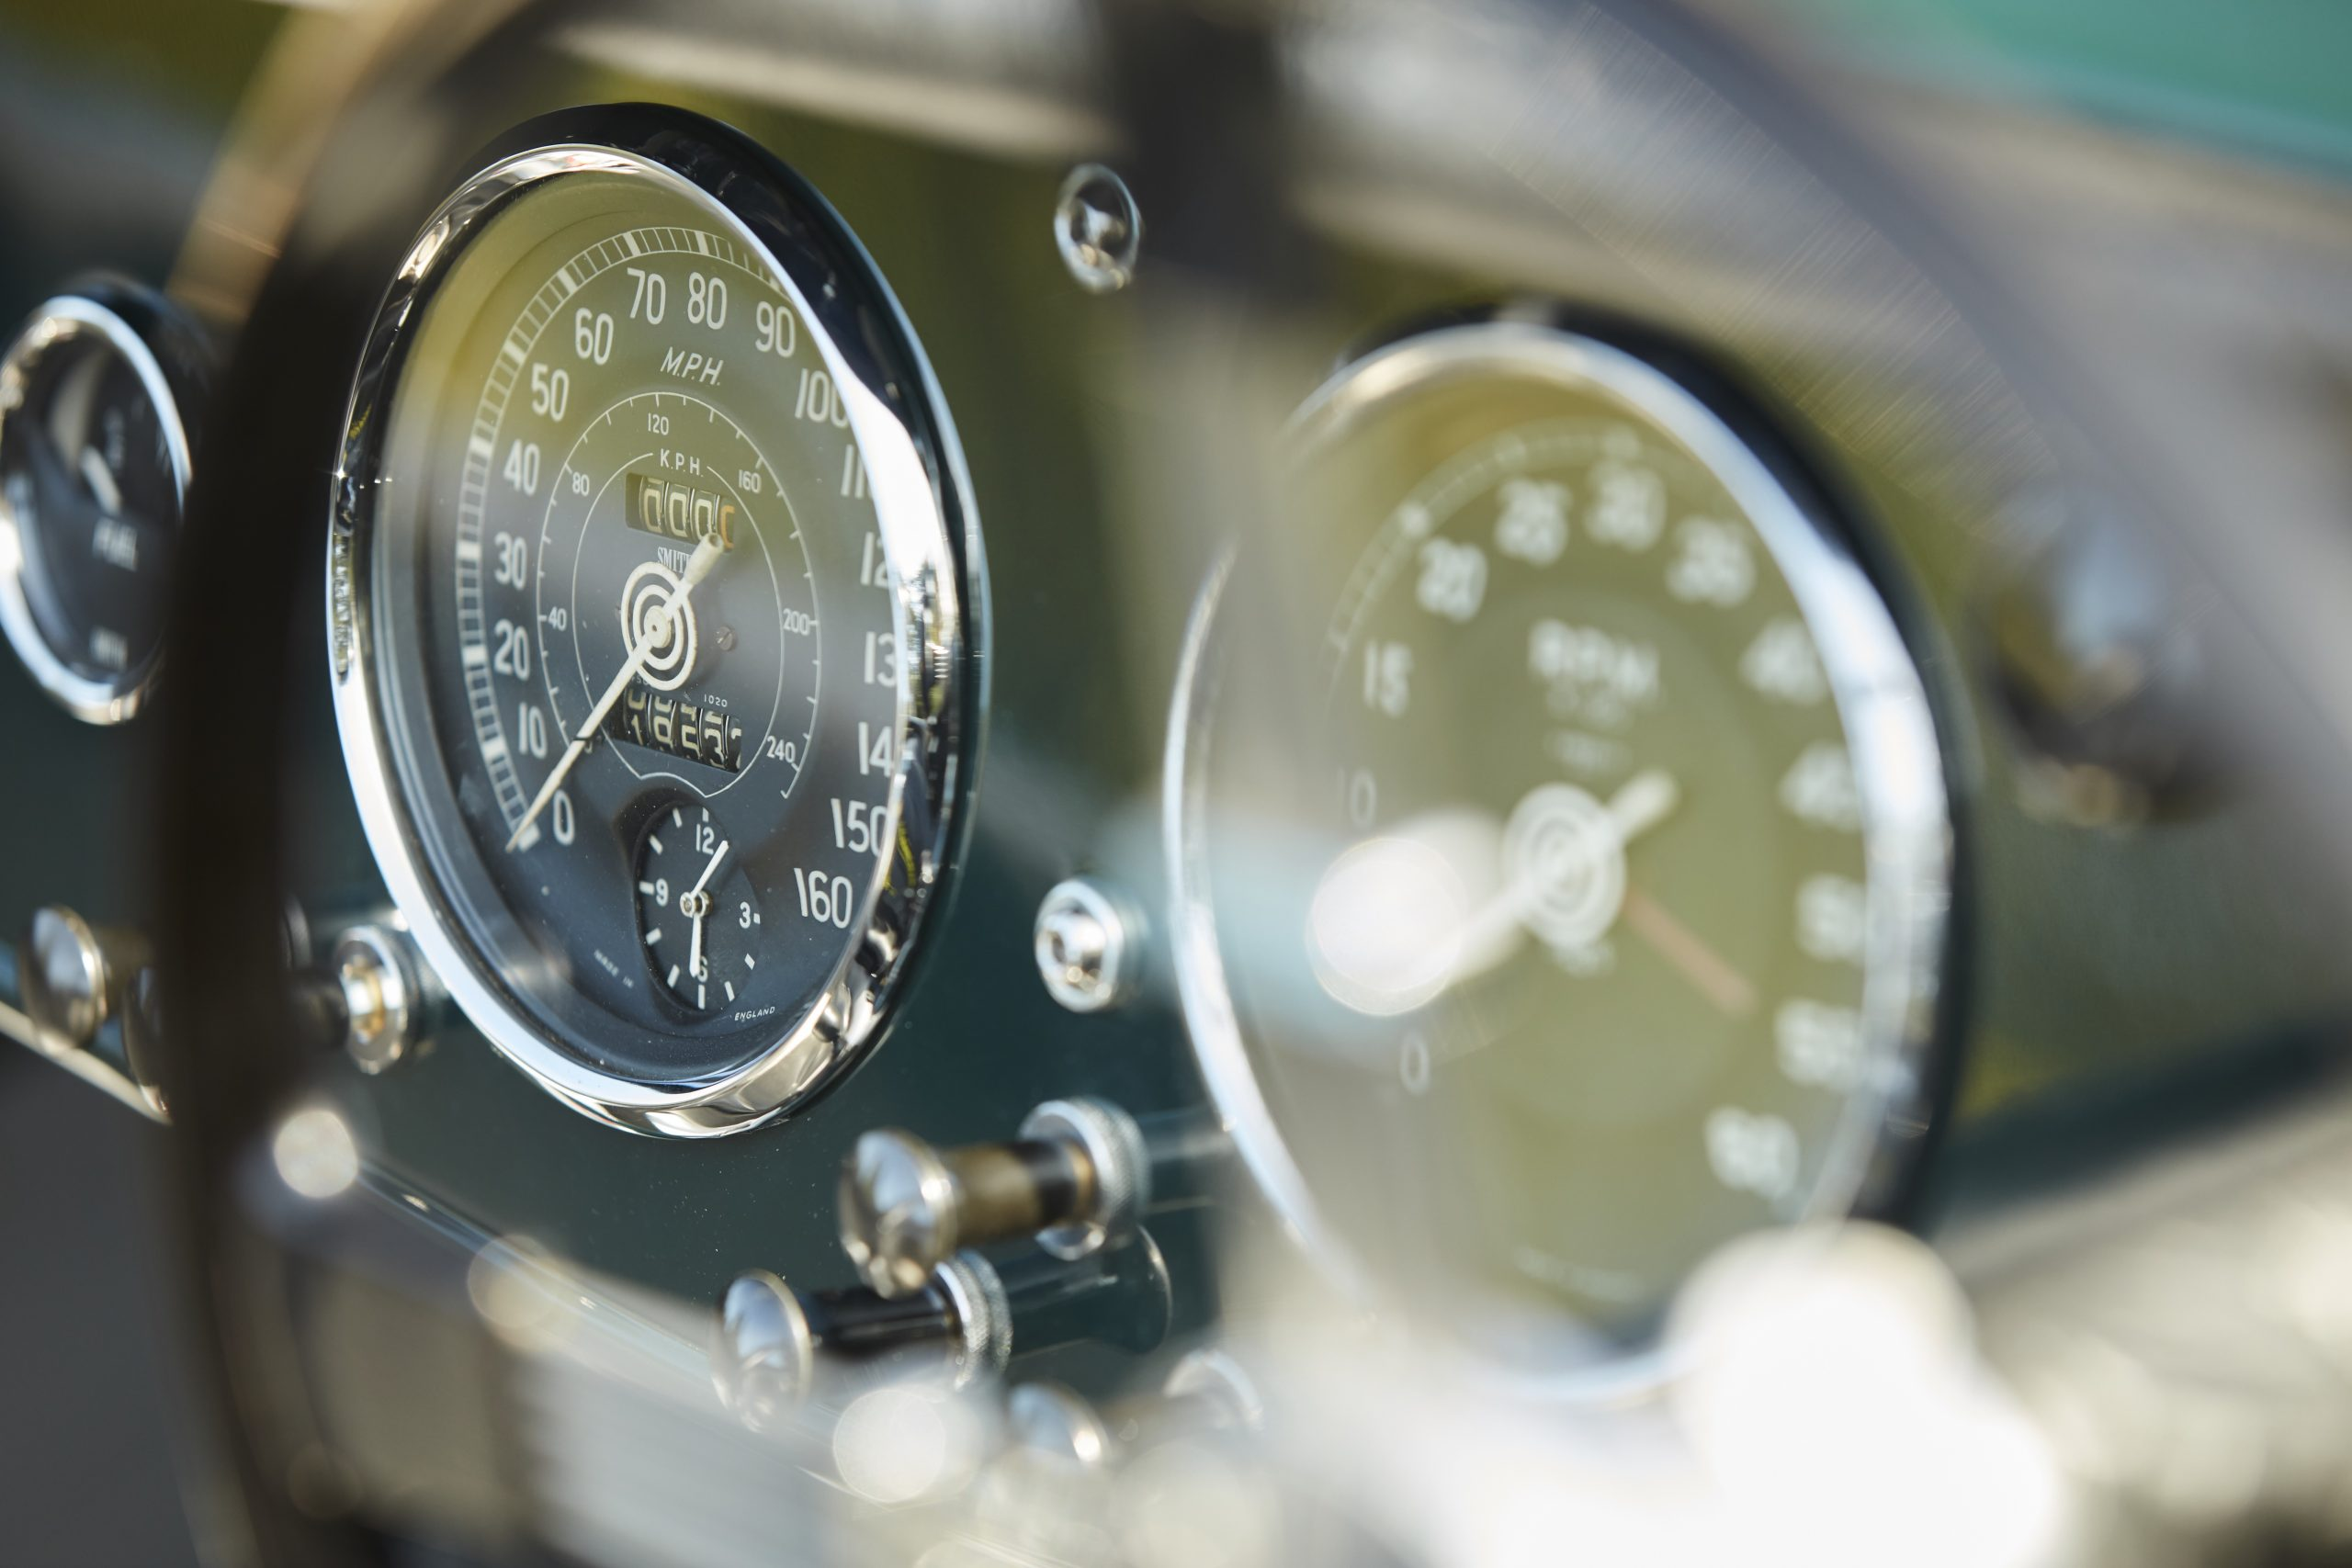 Allard JR continuation car gauges detail